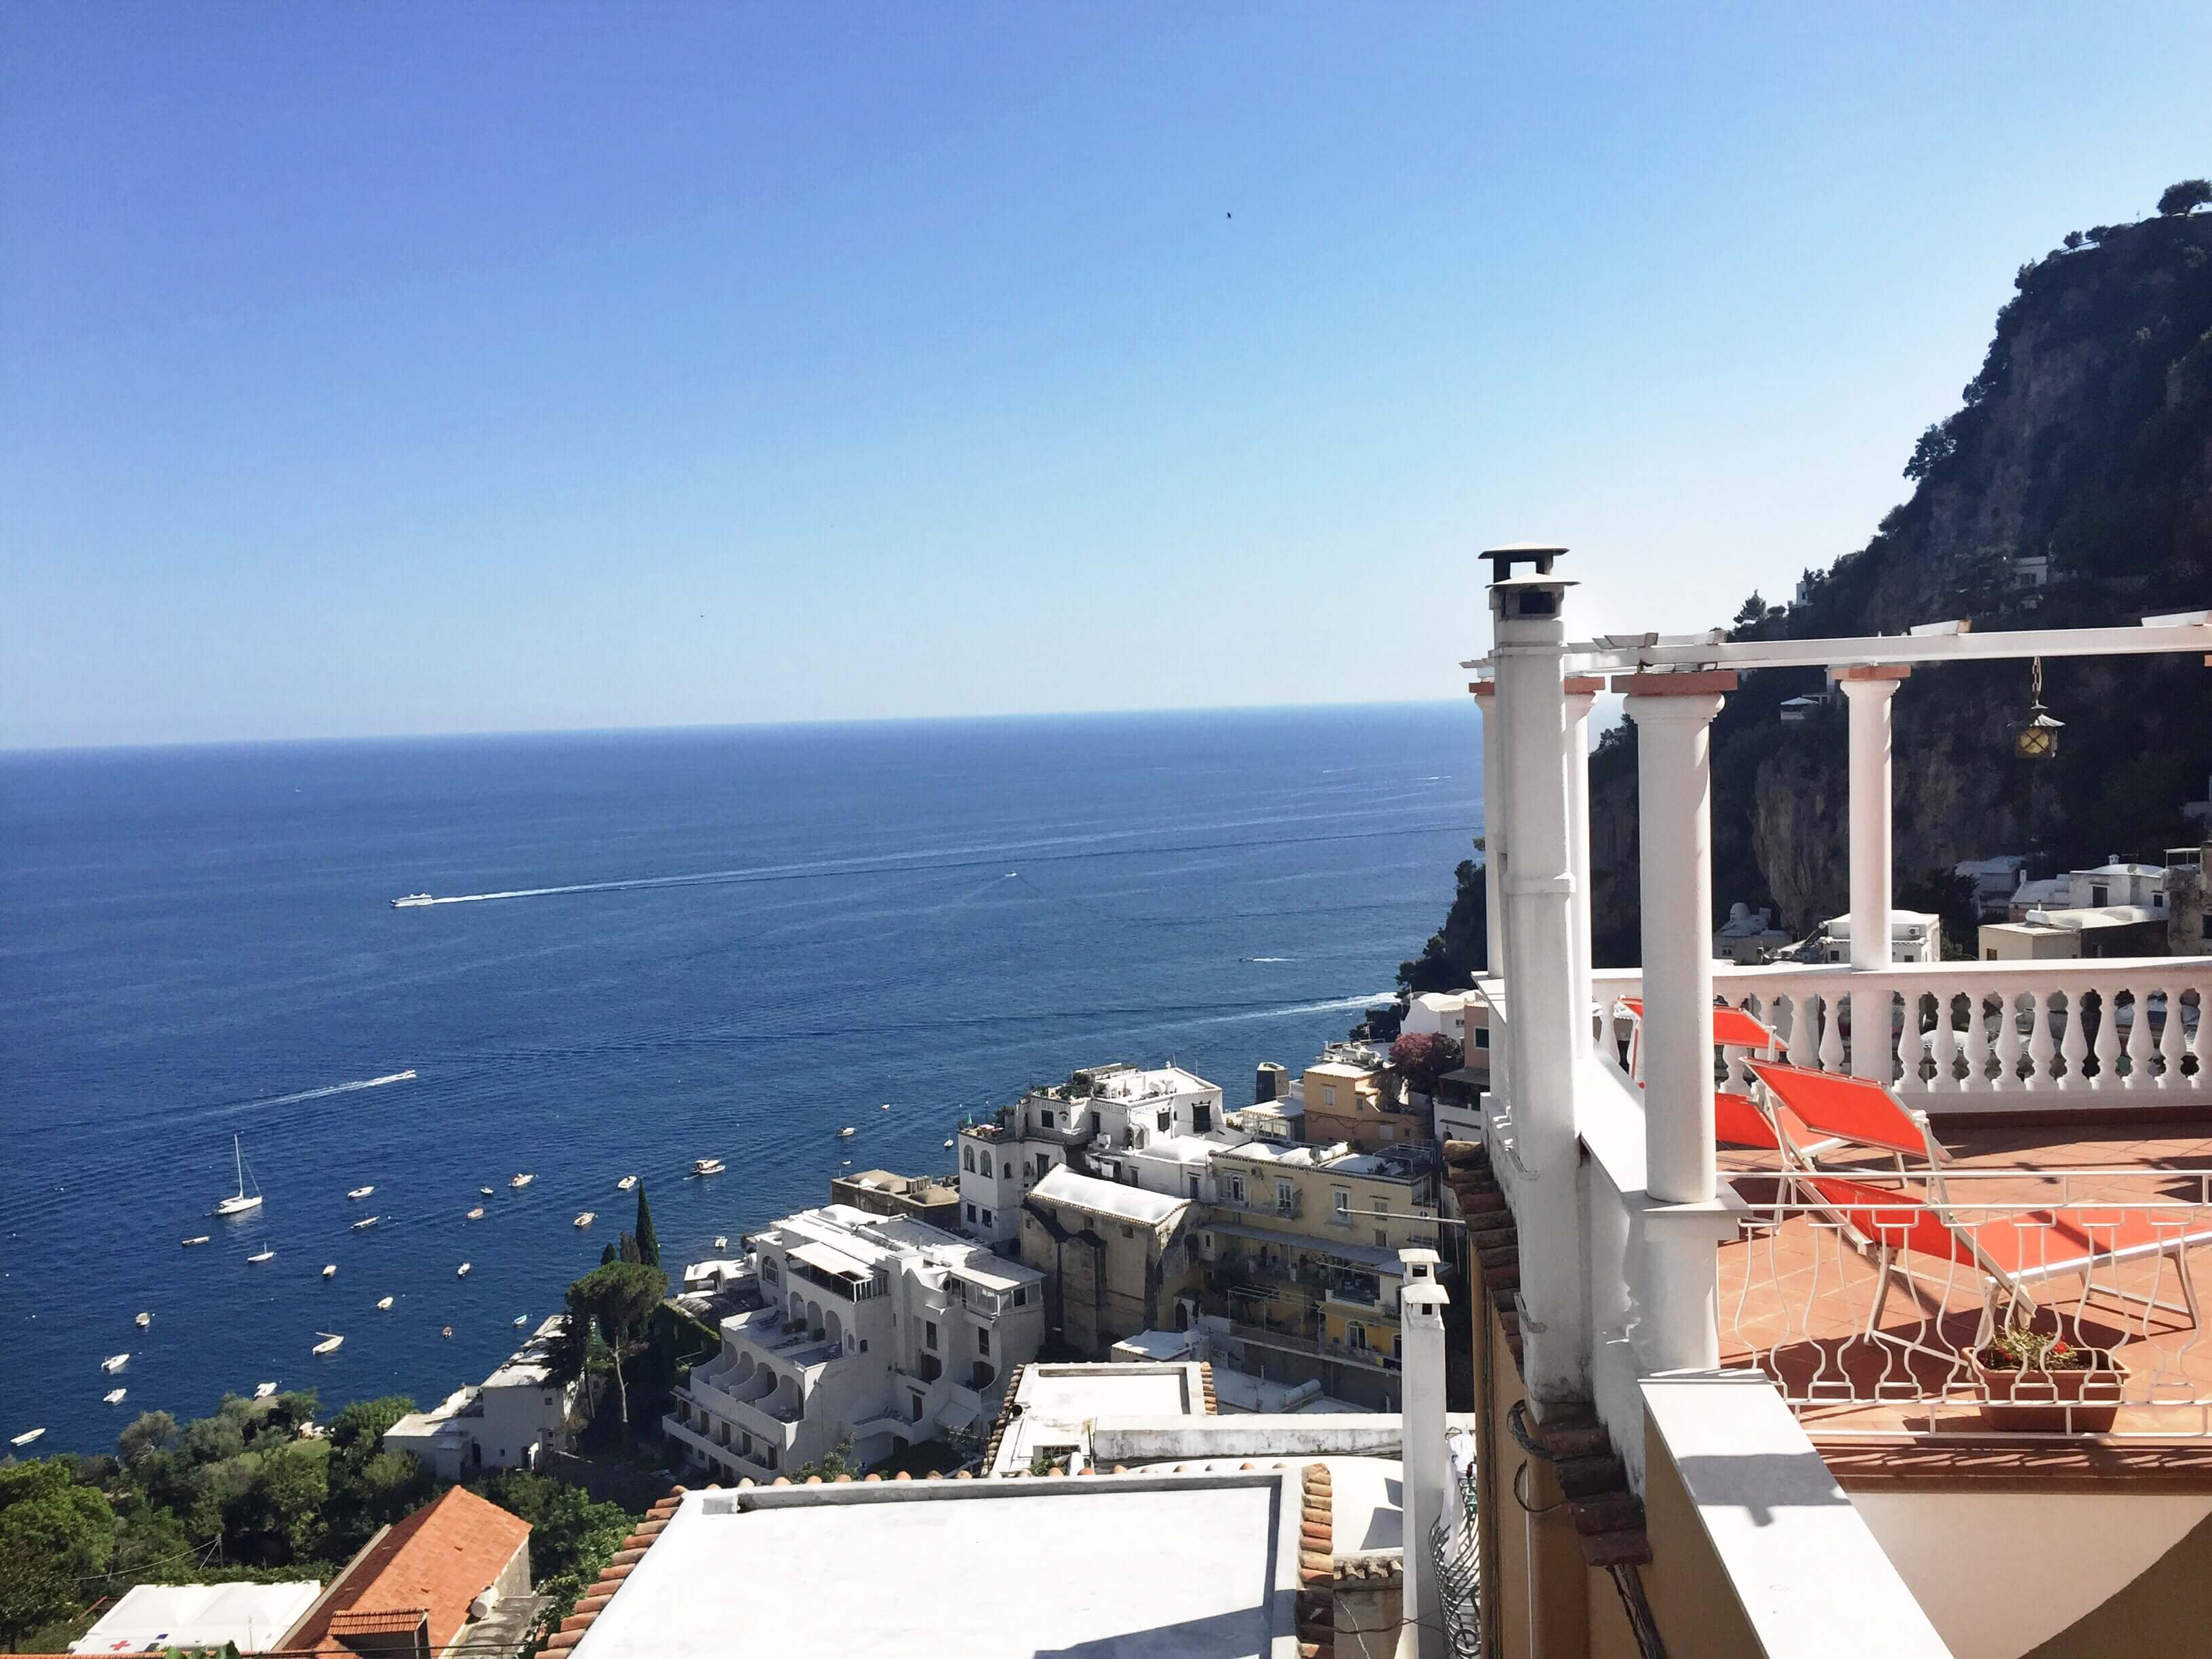 View of my hostel in Positano from my hostel